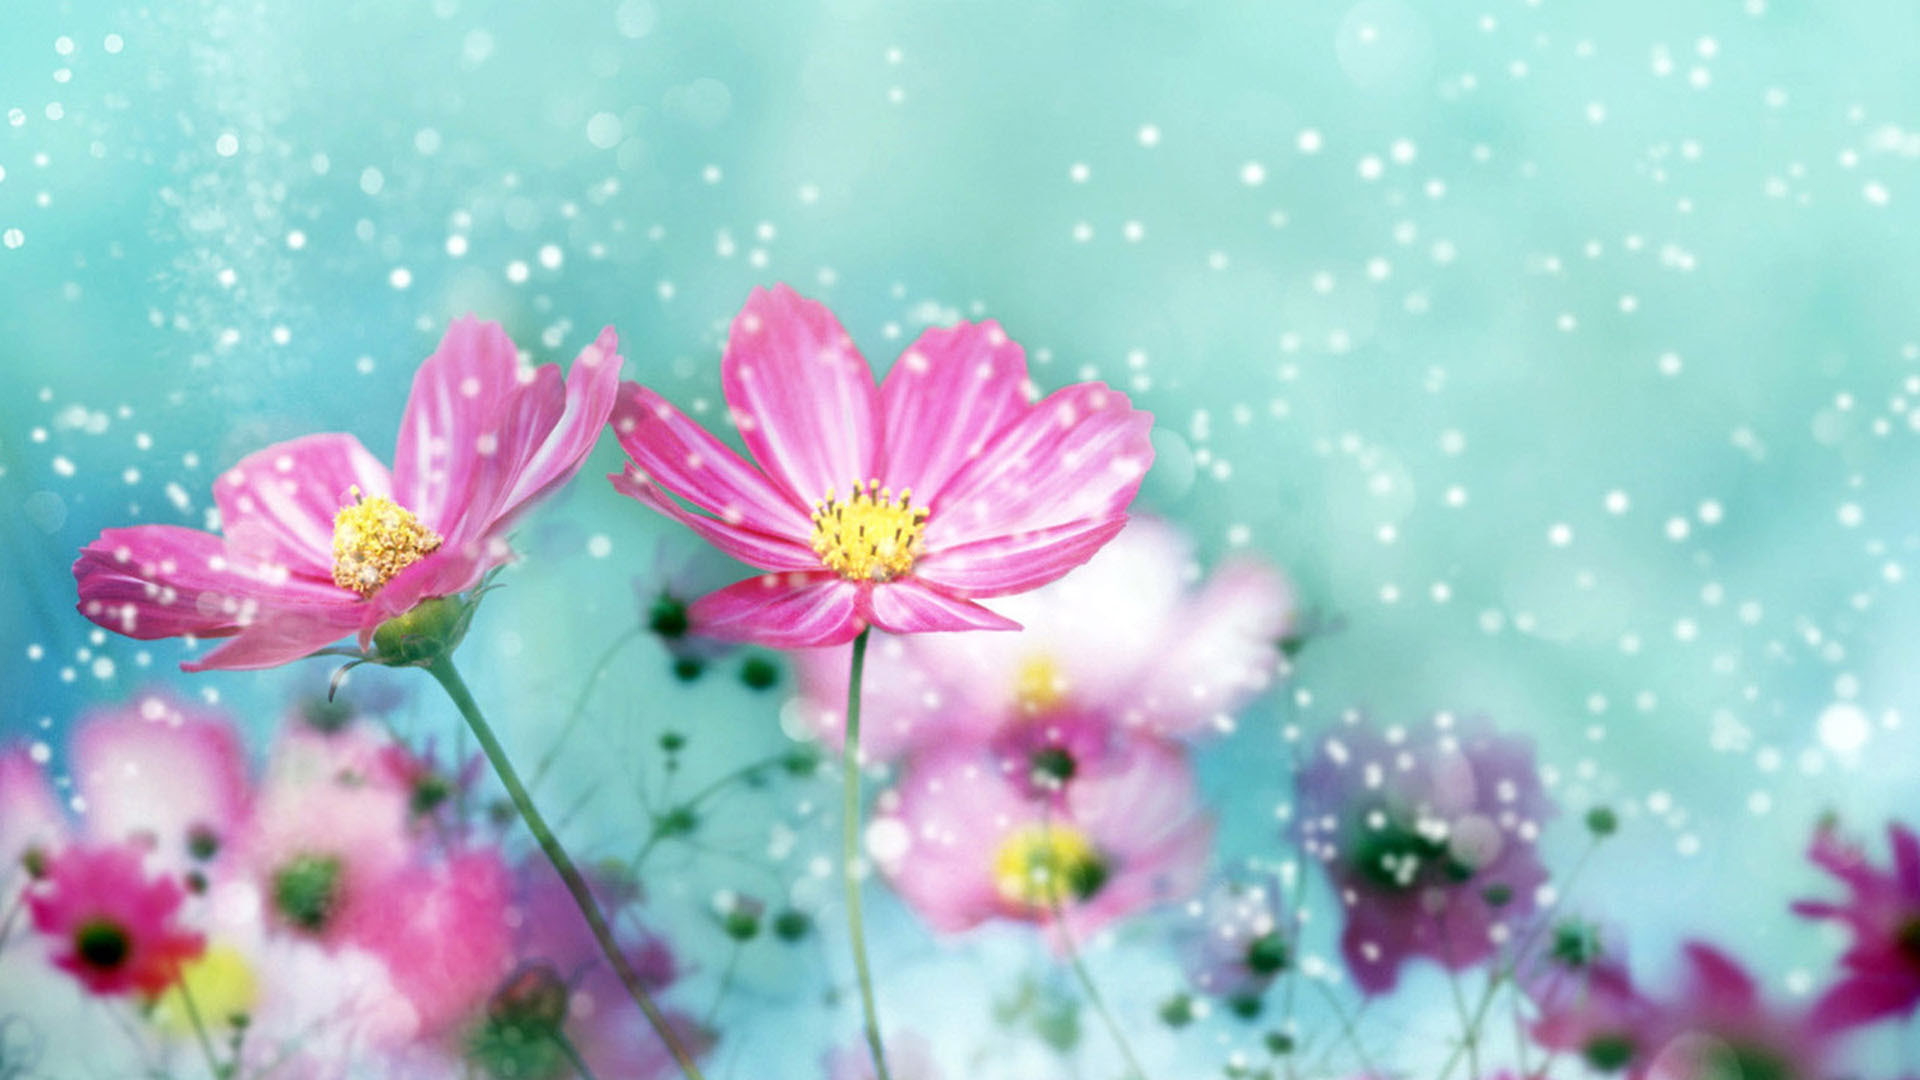 Flower Background Hd Images